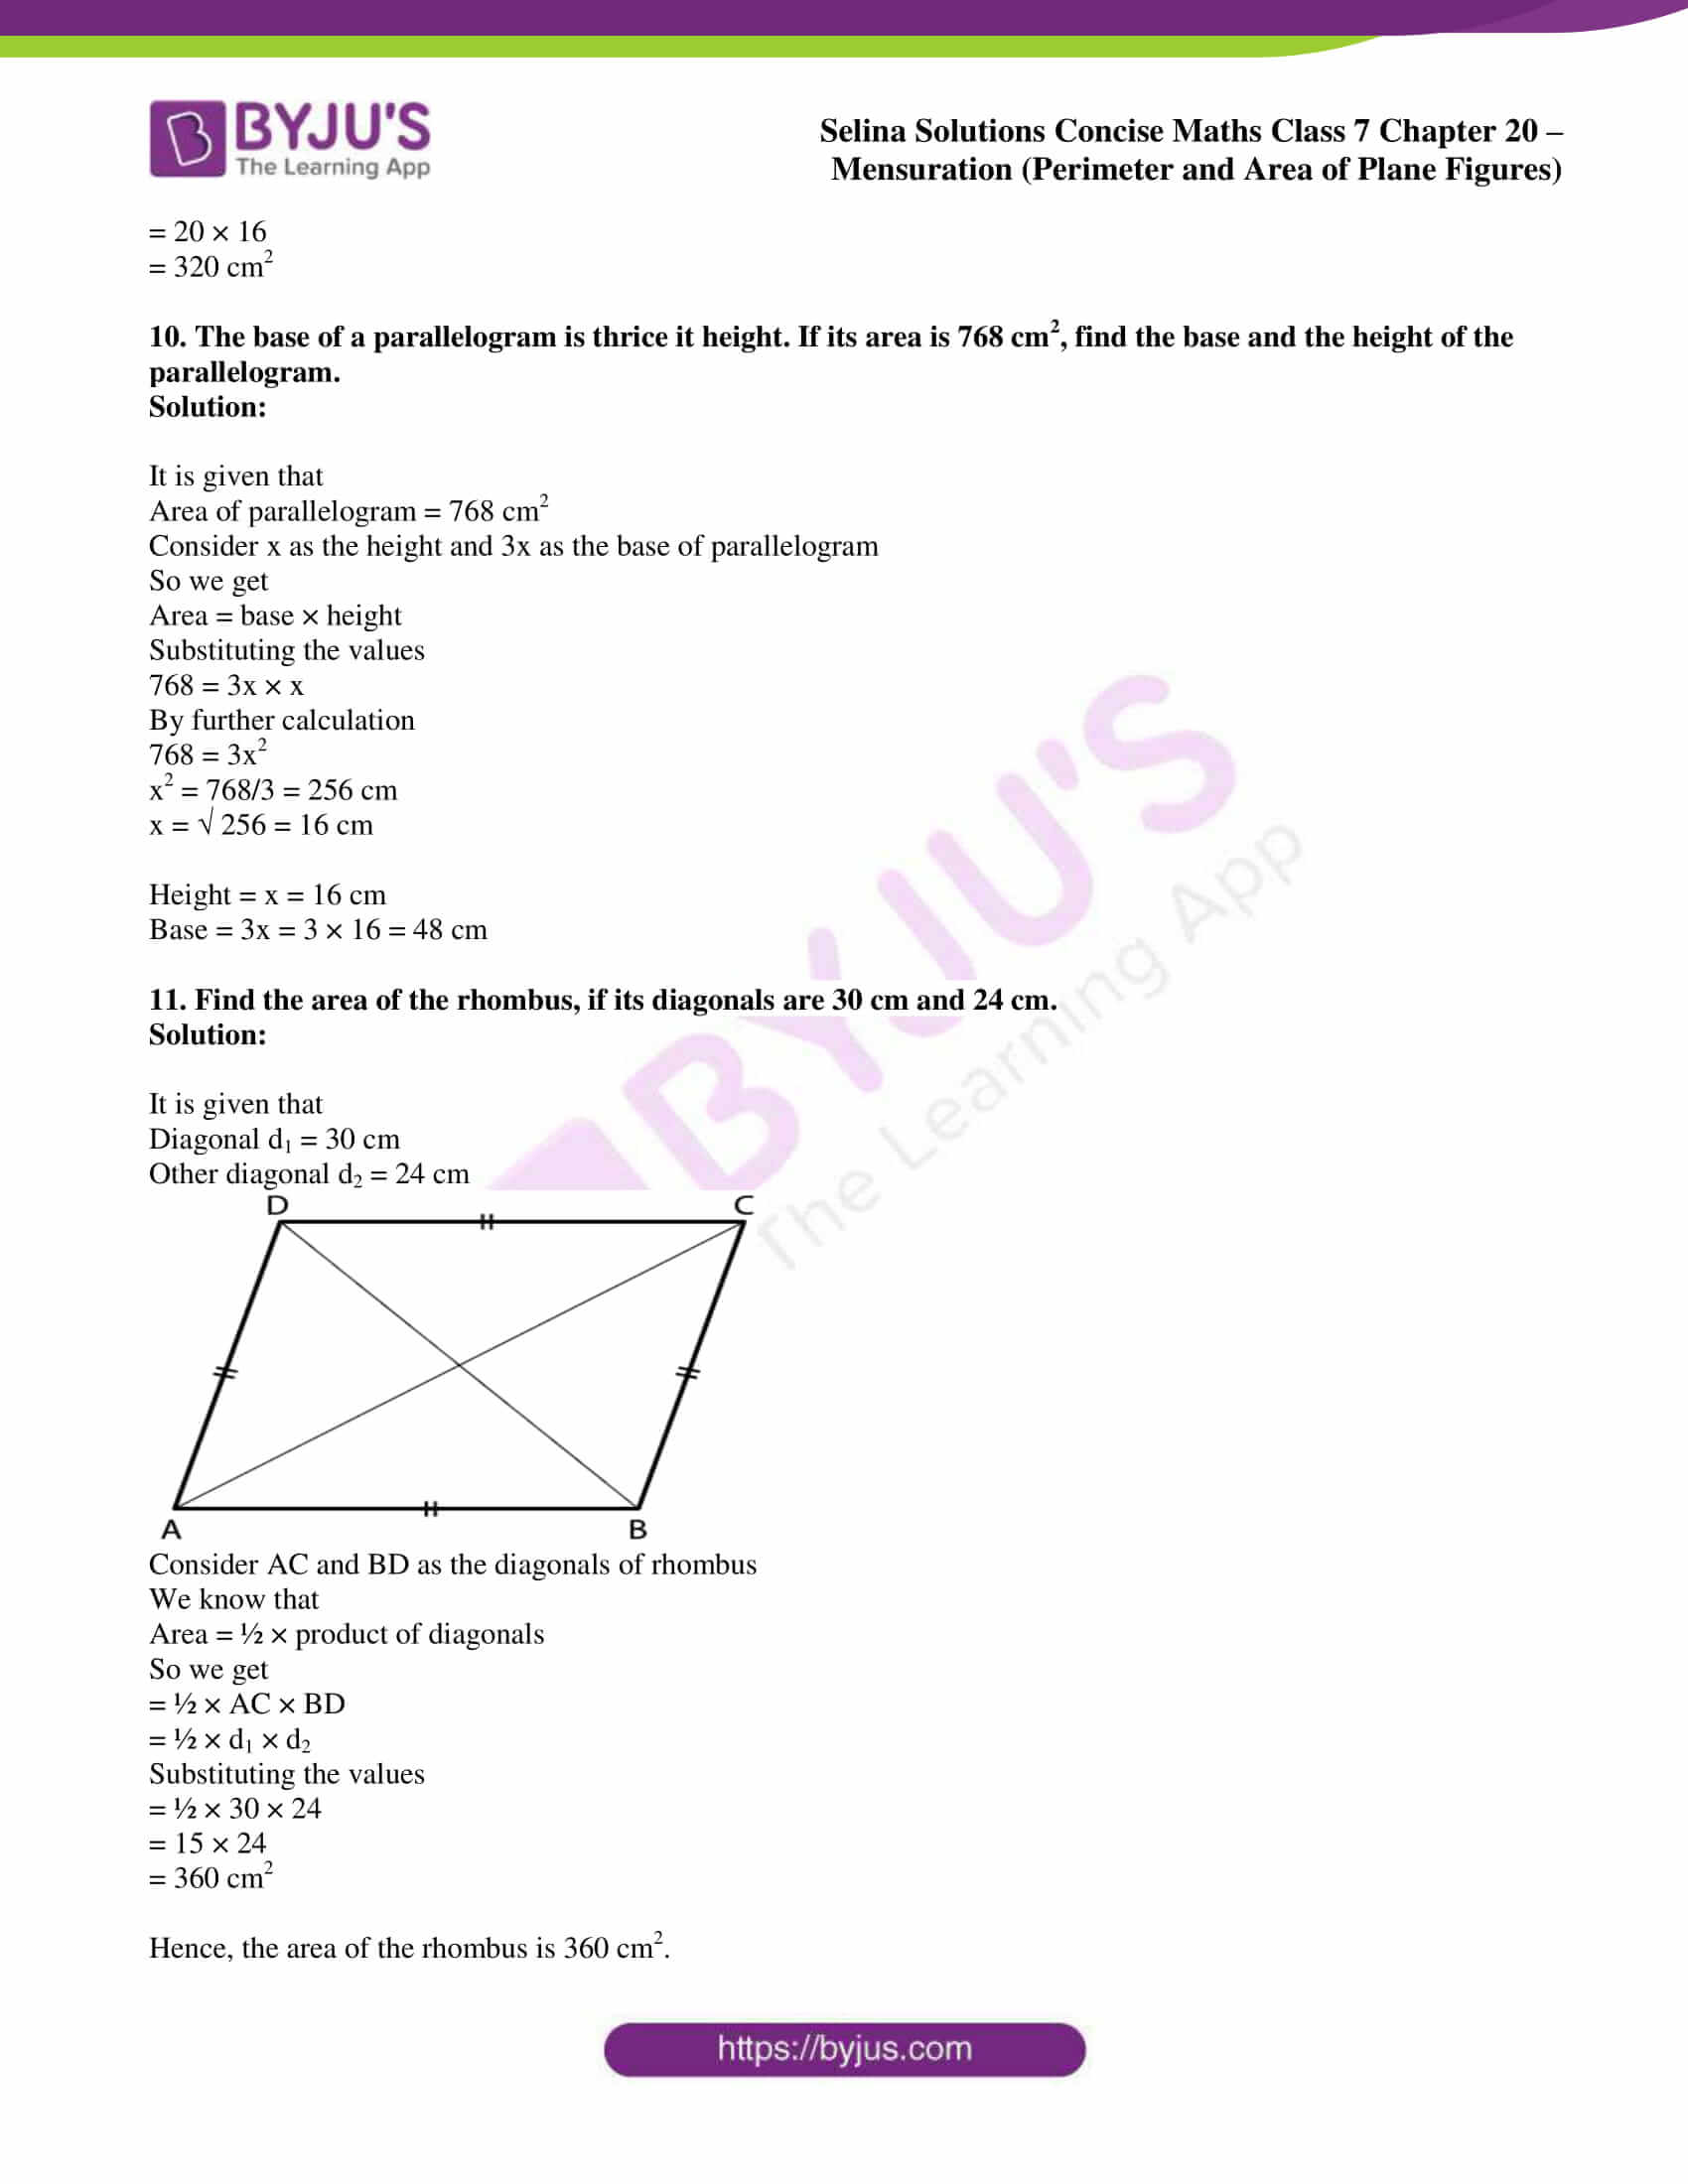 selina sol concise maths class 7 chapter 20 ex b 7